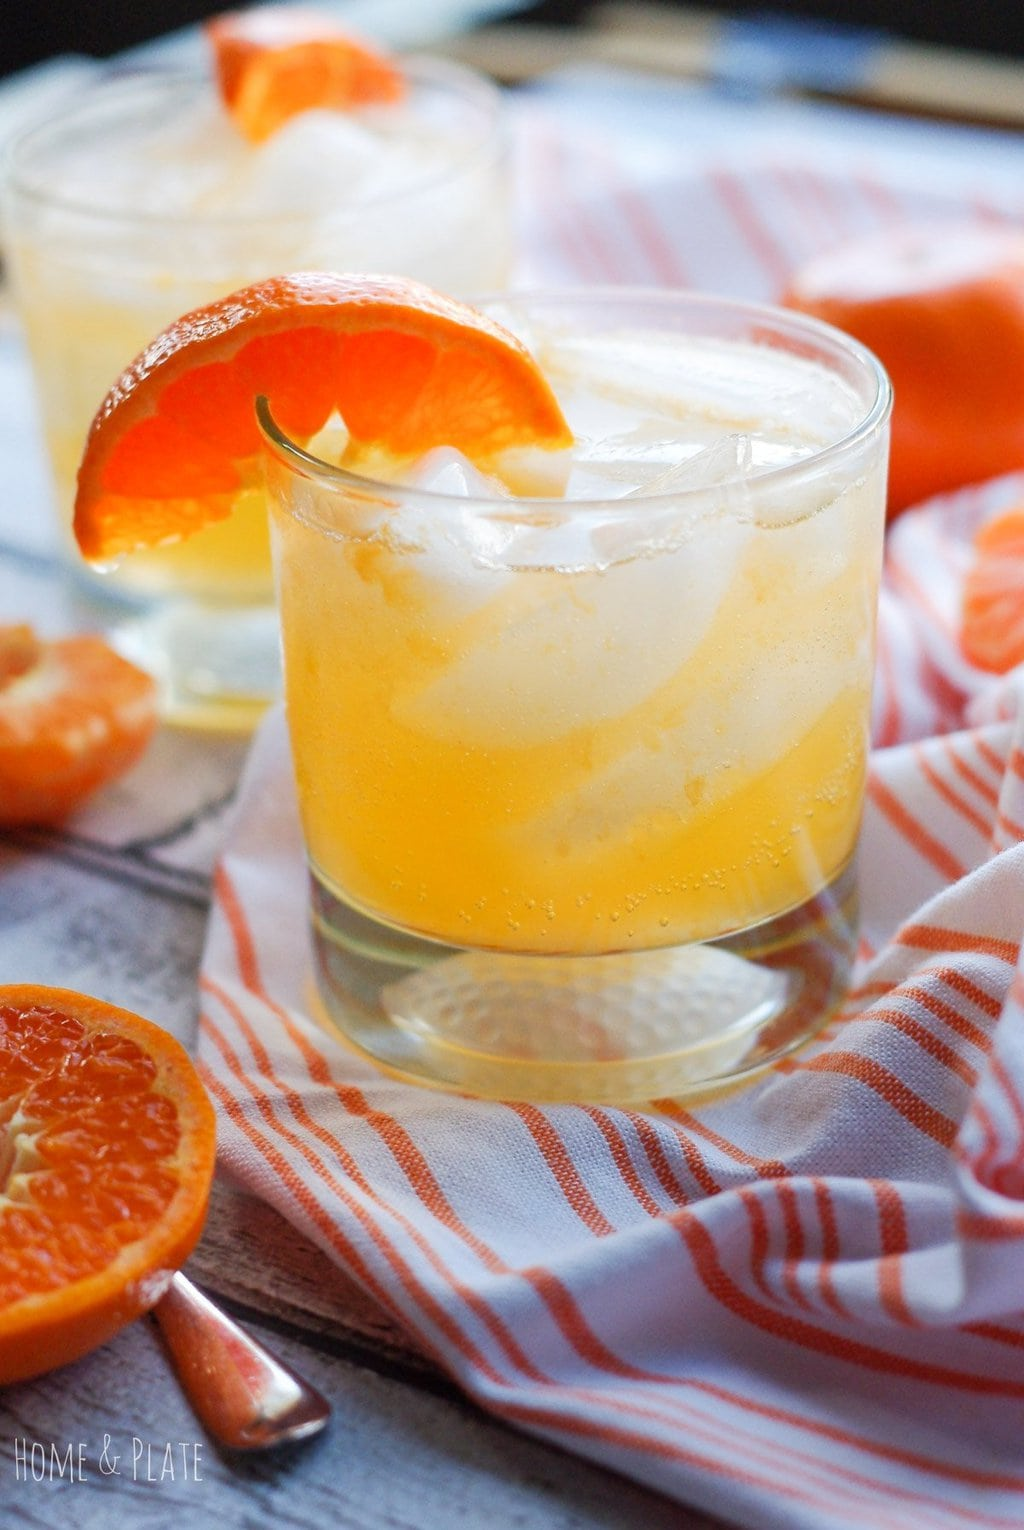 Clementine Prosecco Cocktail Recipe - Home & Plate